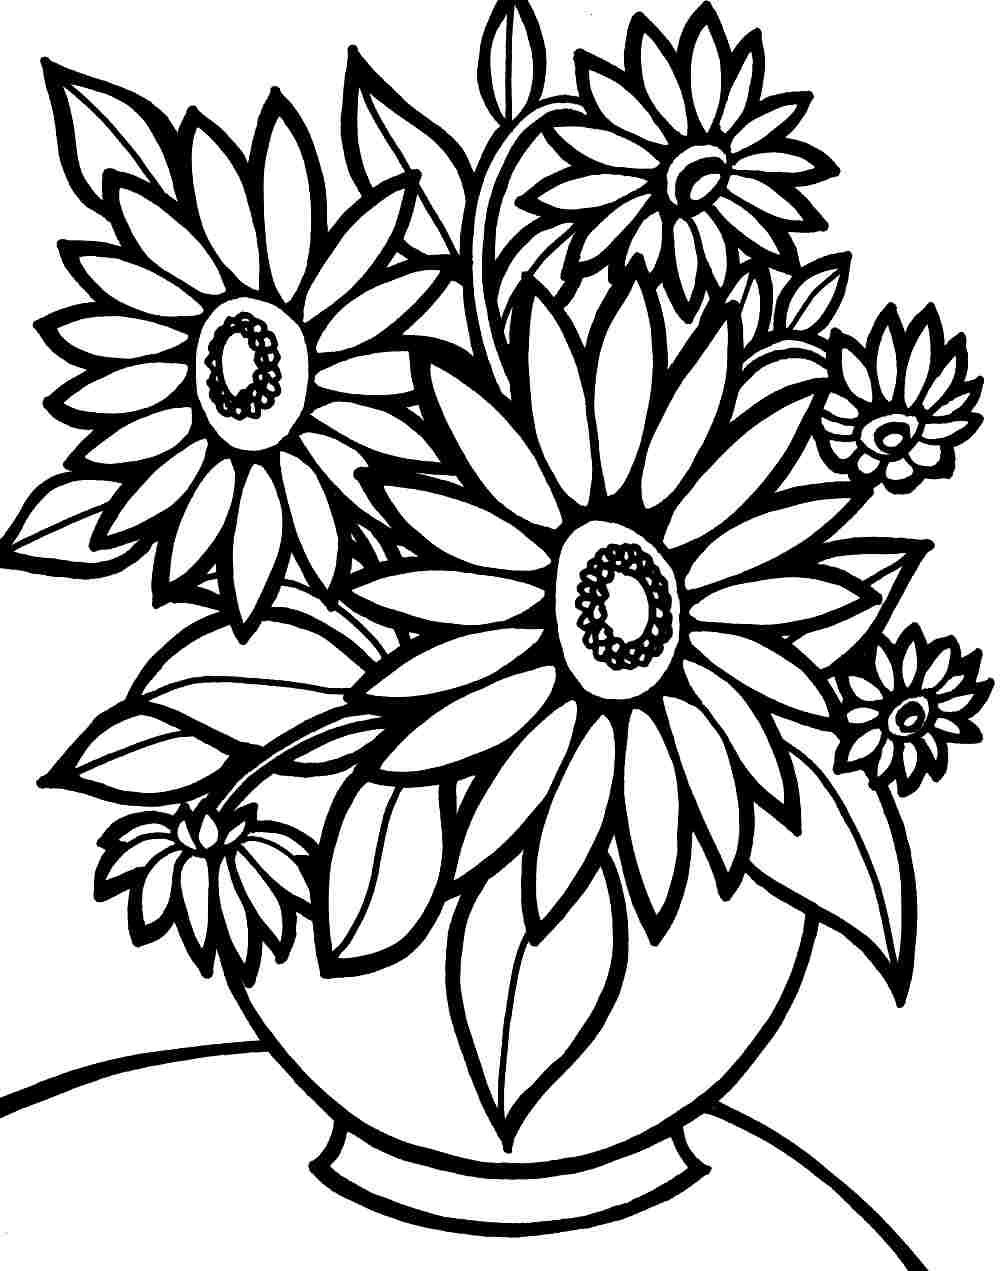 New Printable Flower Coloring Pages for Girls Gallery Collection Of Impressive Maple Leaf Coloring Page Download Free Leaves Printable to Print